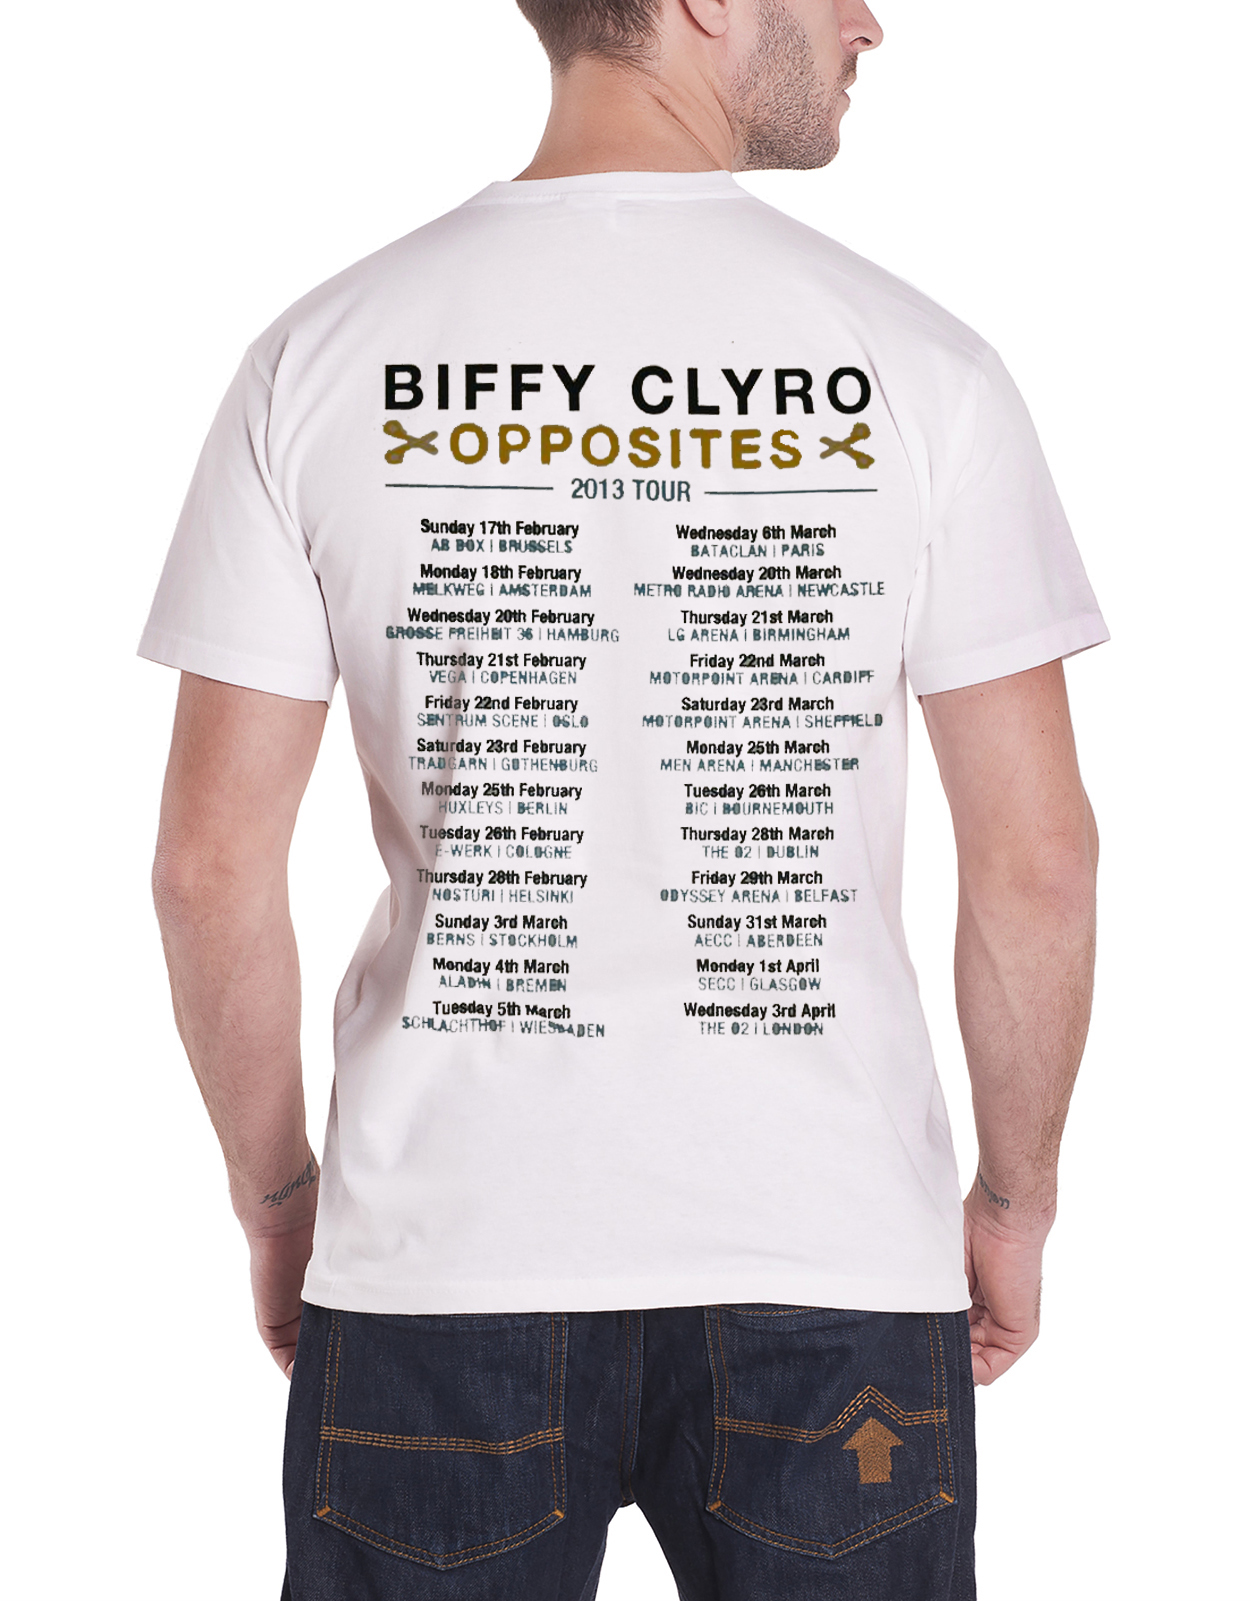 Biffy Clyro T Shirt Ellipsis Band Logo Tour Opposites